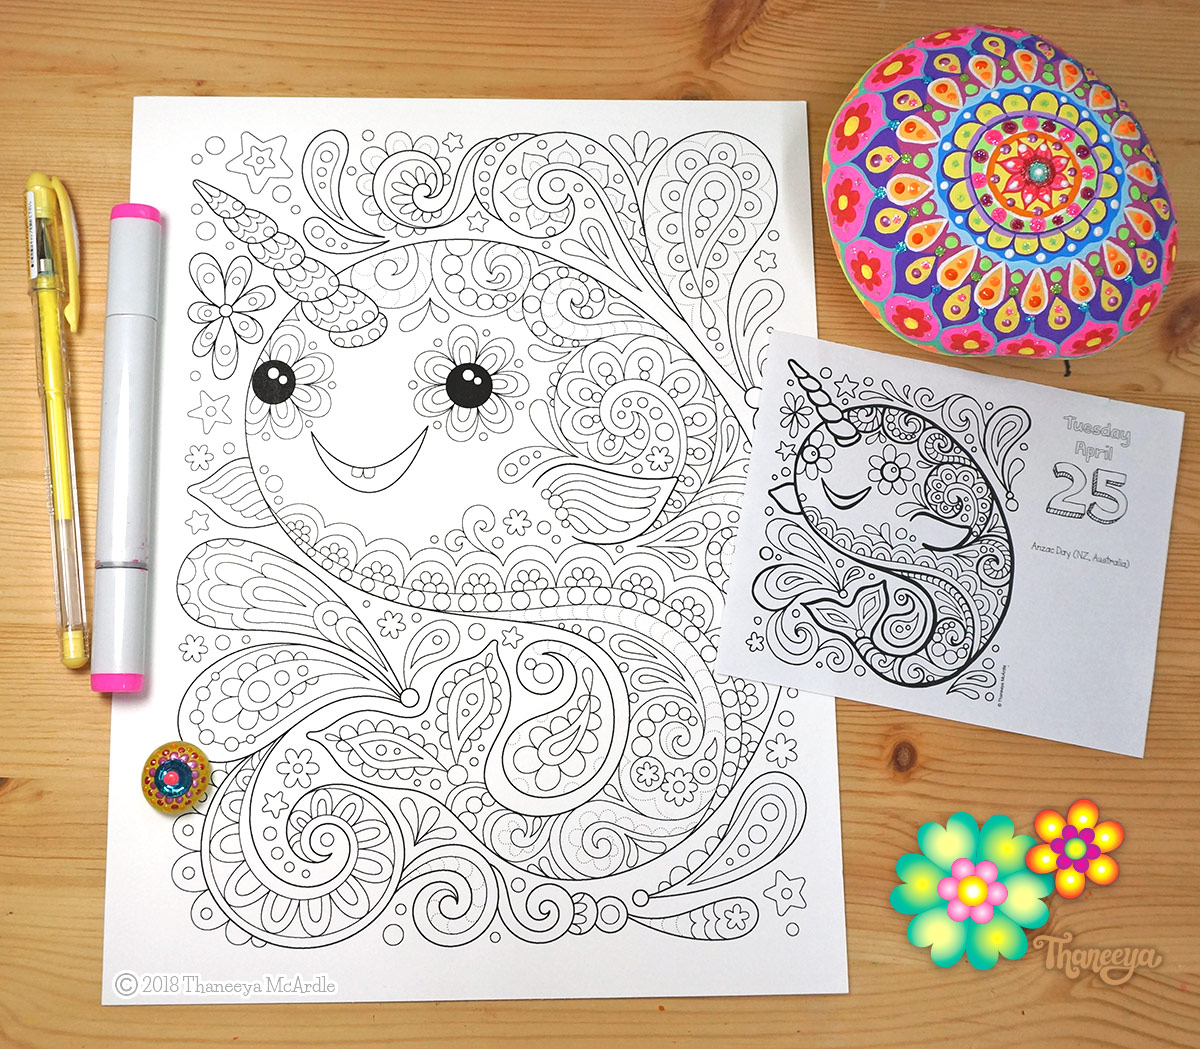 Narwhal coloring page by Thaneeya McArdle